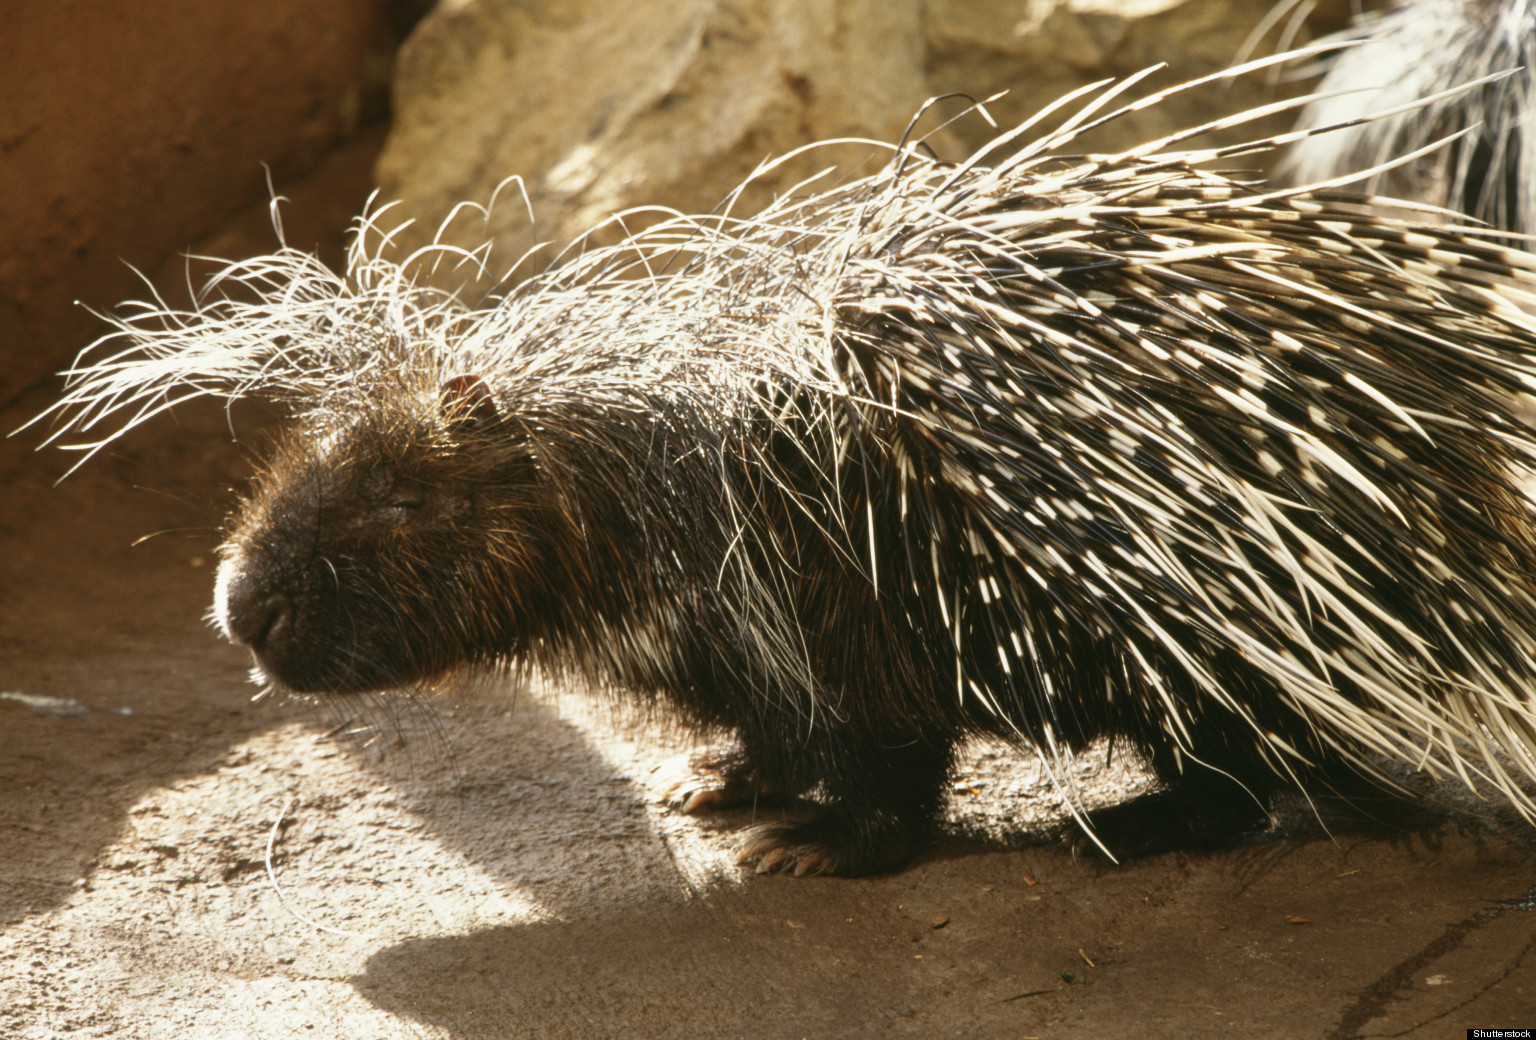 Porcupine Quills Inspire Better Needles For Medical Devices